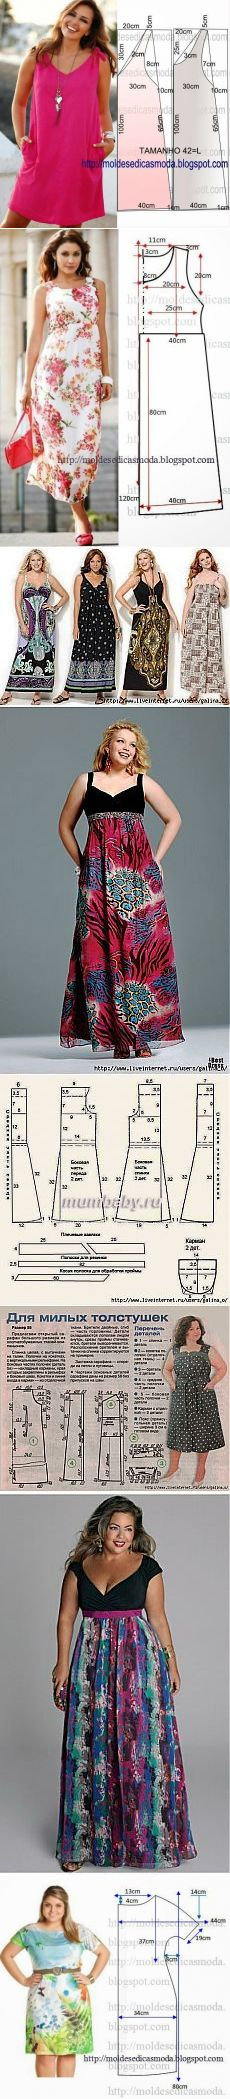 928 best Nähen images on Pinterest | Sewing projects, Monsters and ...